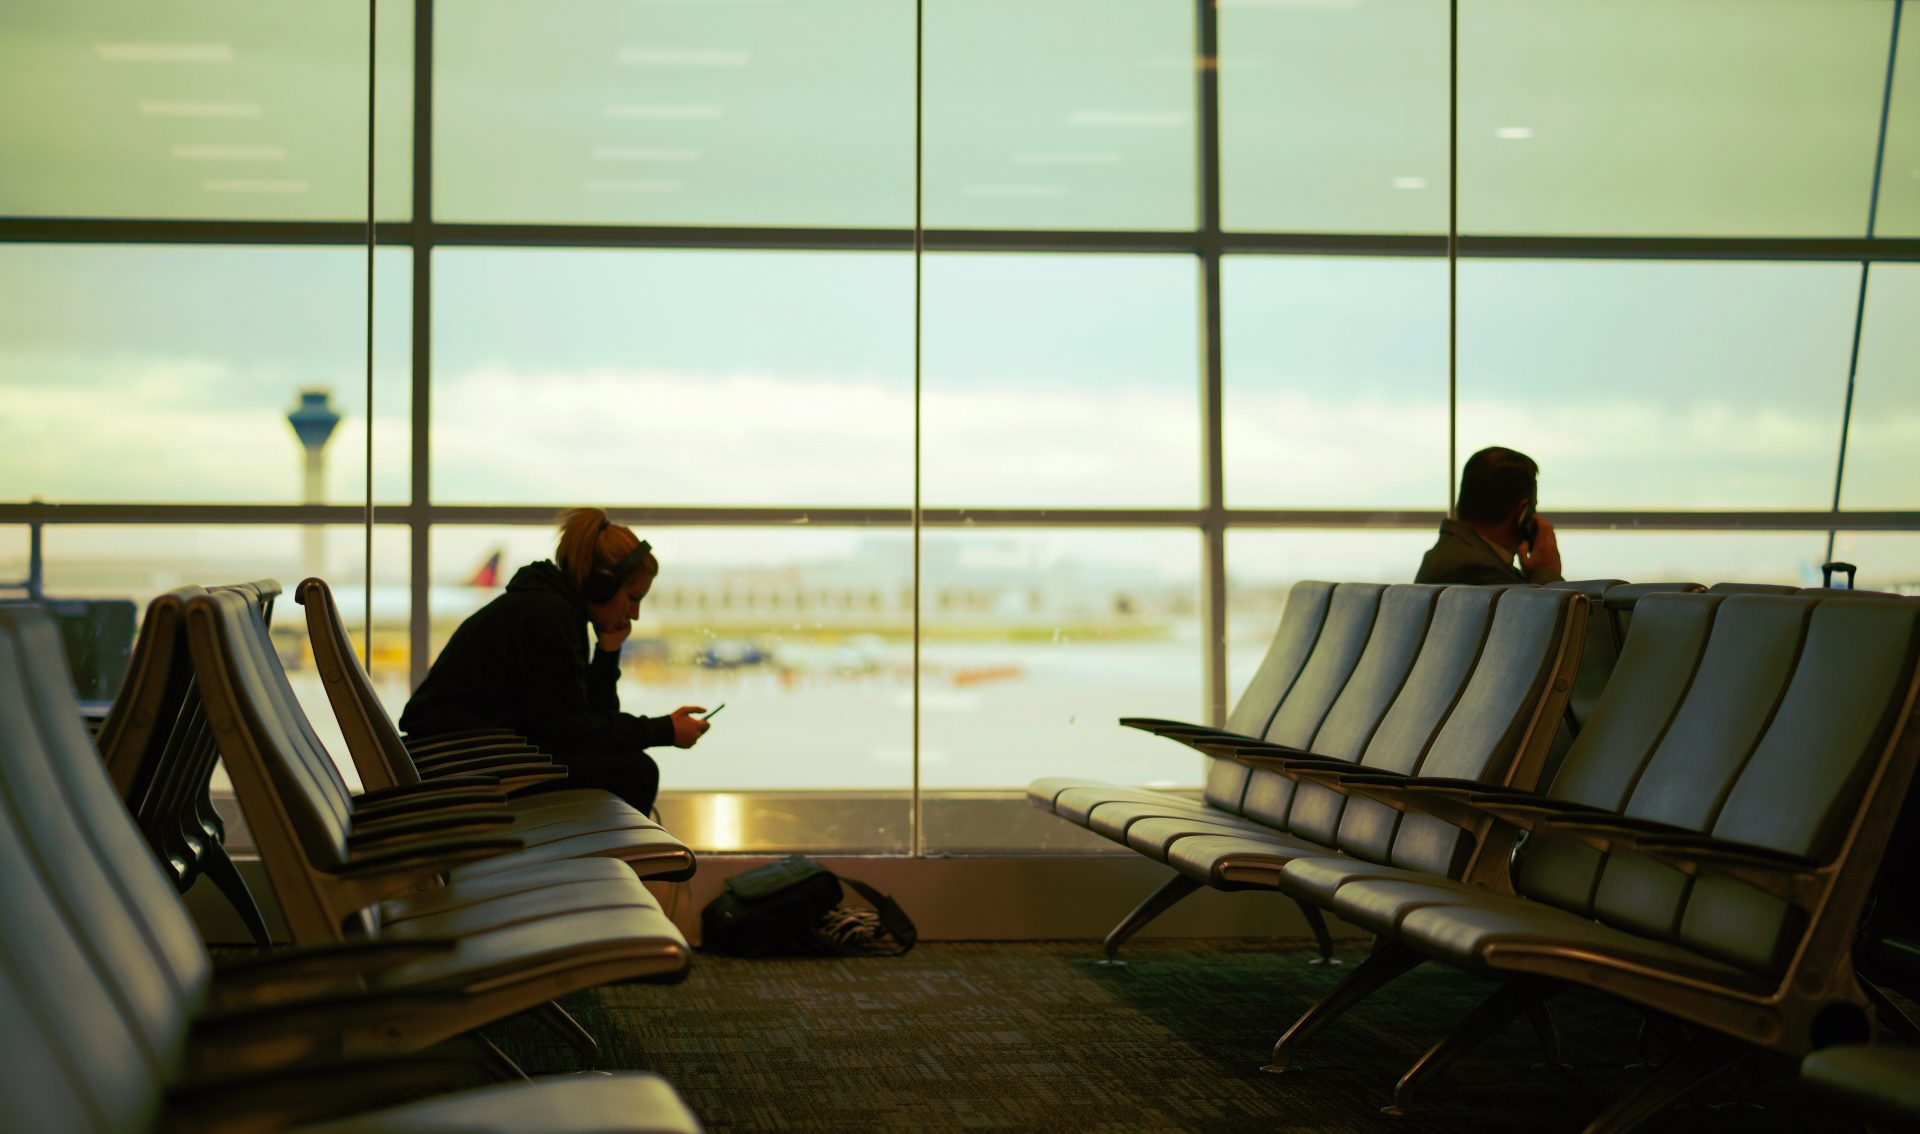 Sitting silhouettes against airport window, once checking phone for delayed flight info